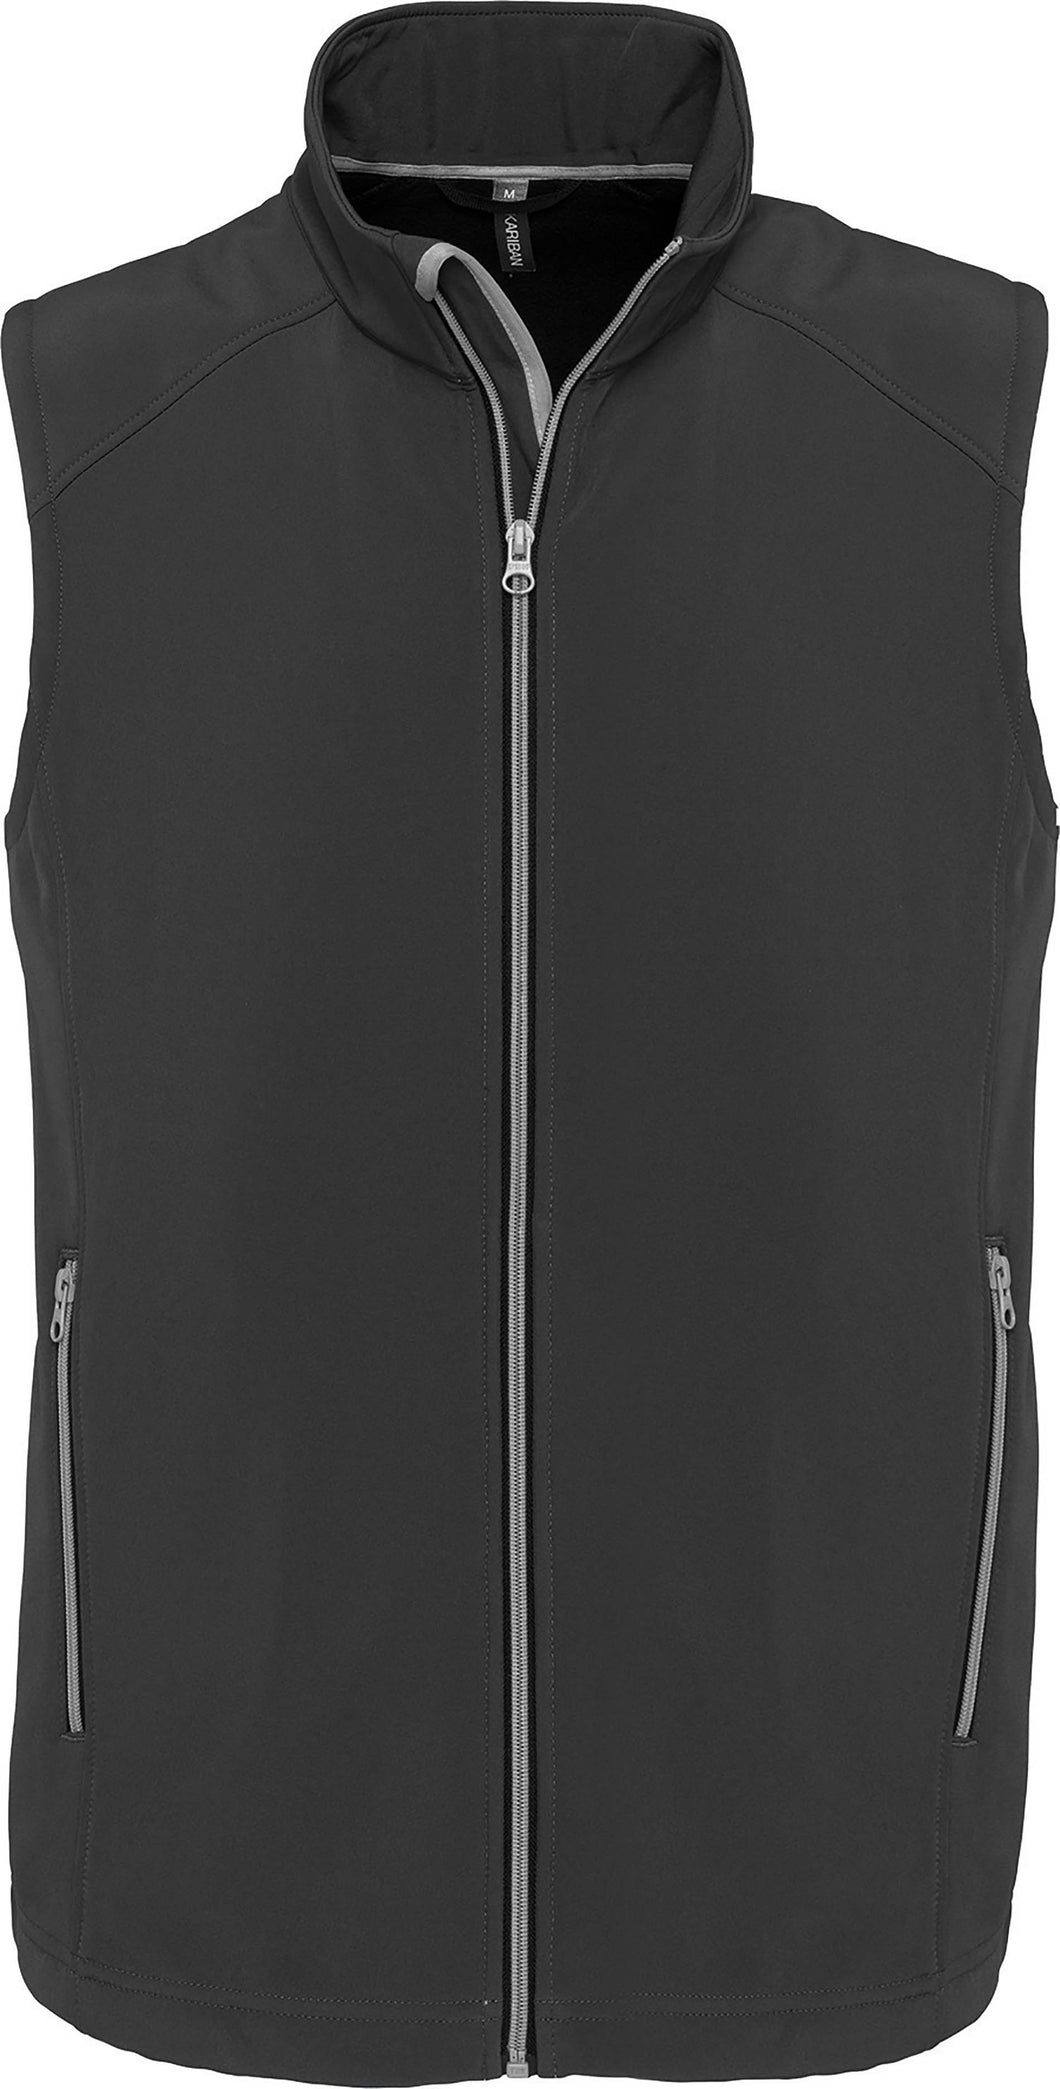 Bodywarmer Softshell 2 Couches sans Manche / Personnalisable